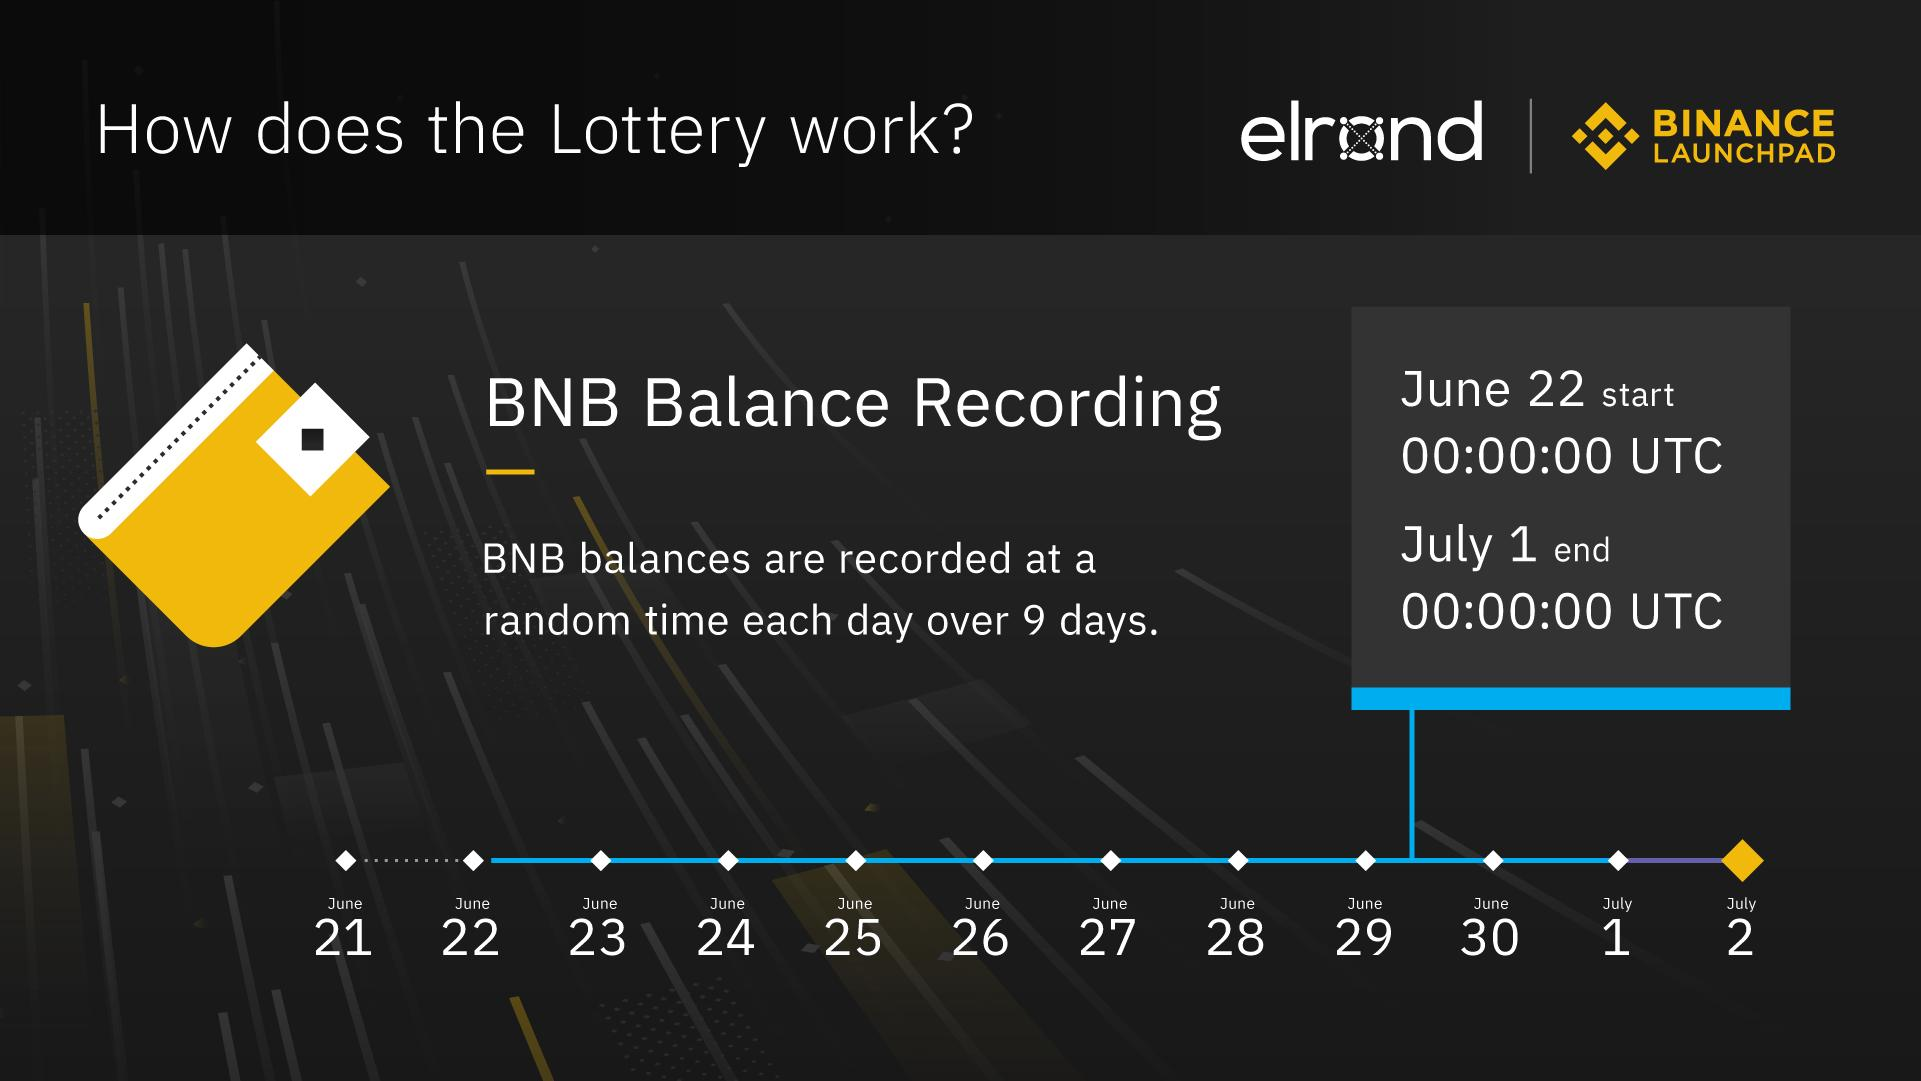 Binance Launchpad Lottery